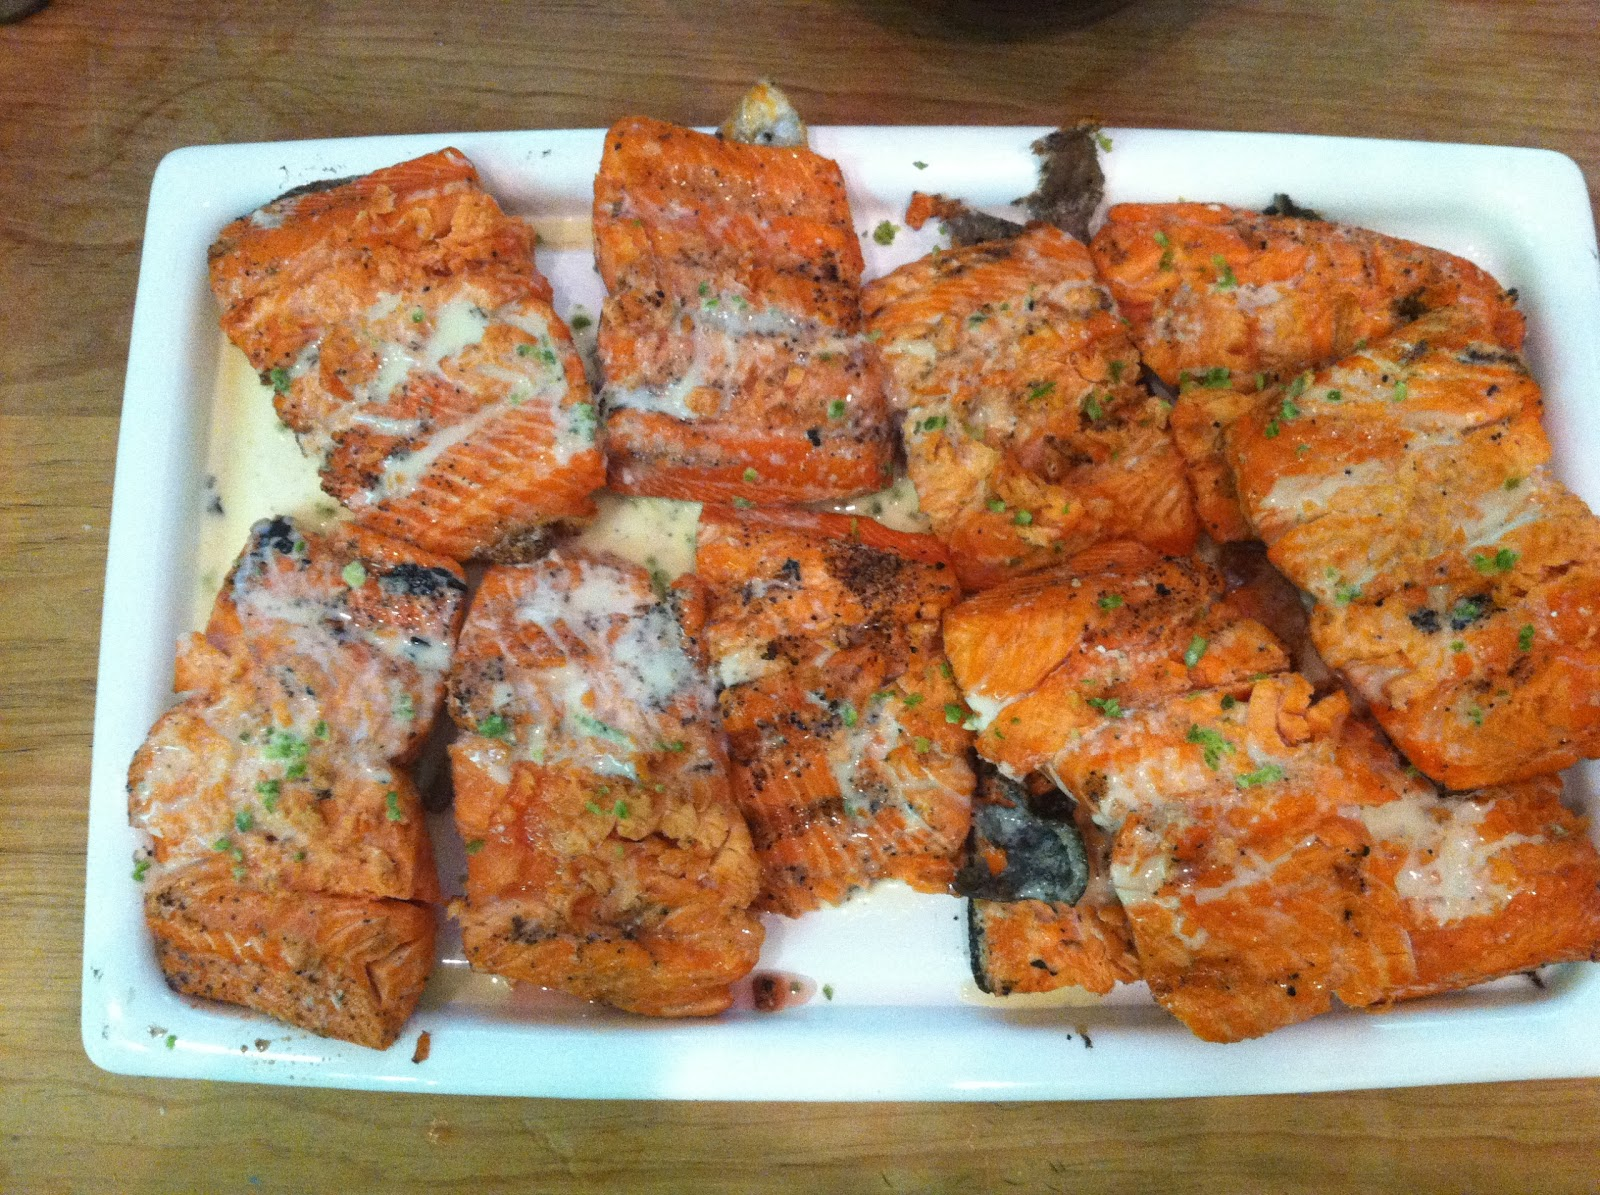 The Gourmet Project: Grilled Salmon with Lime Butter Sauce (Page 512)